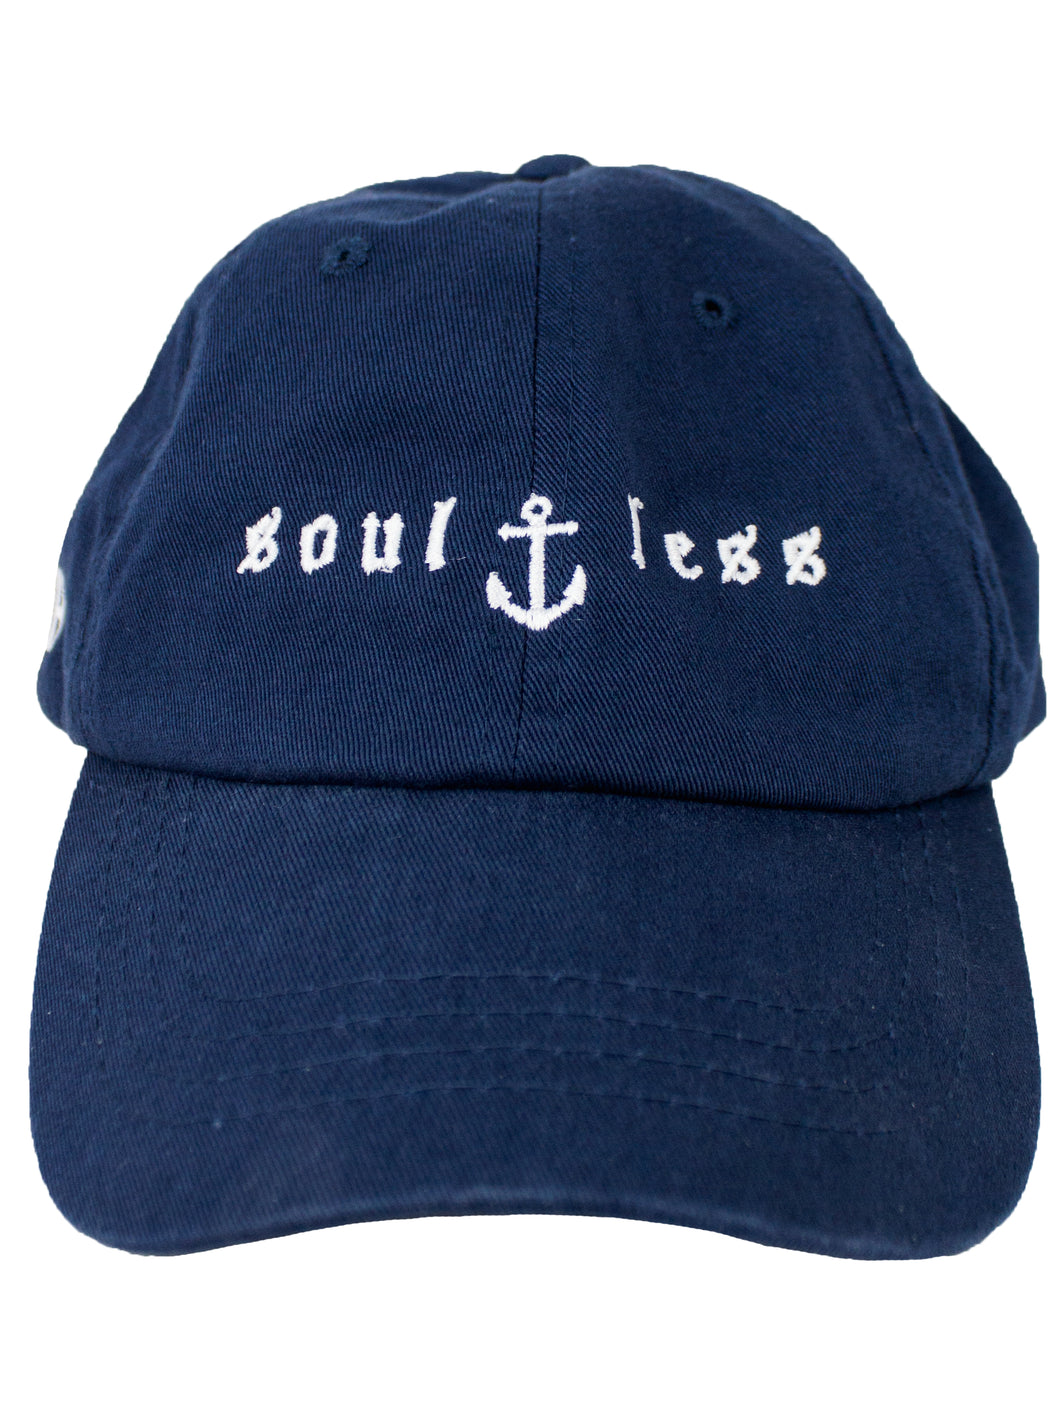 Soulless Cap // Navy Blue